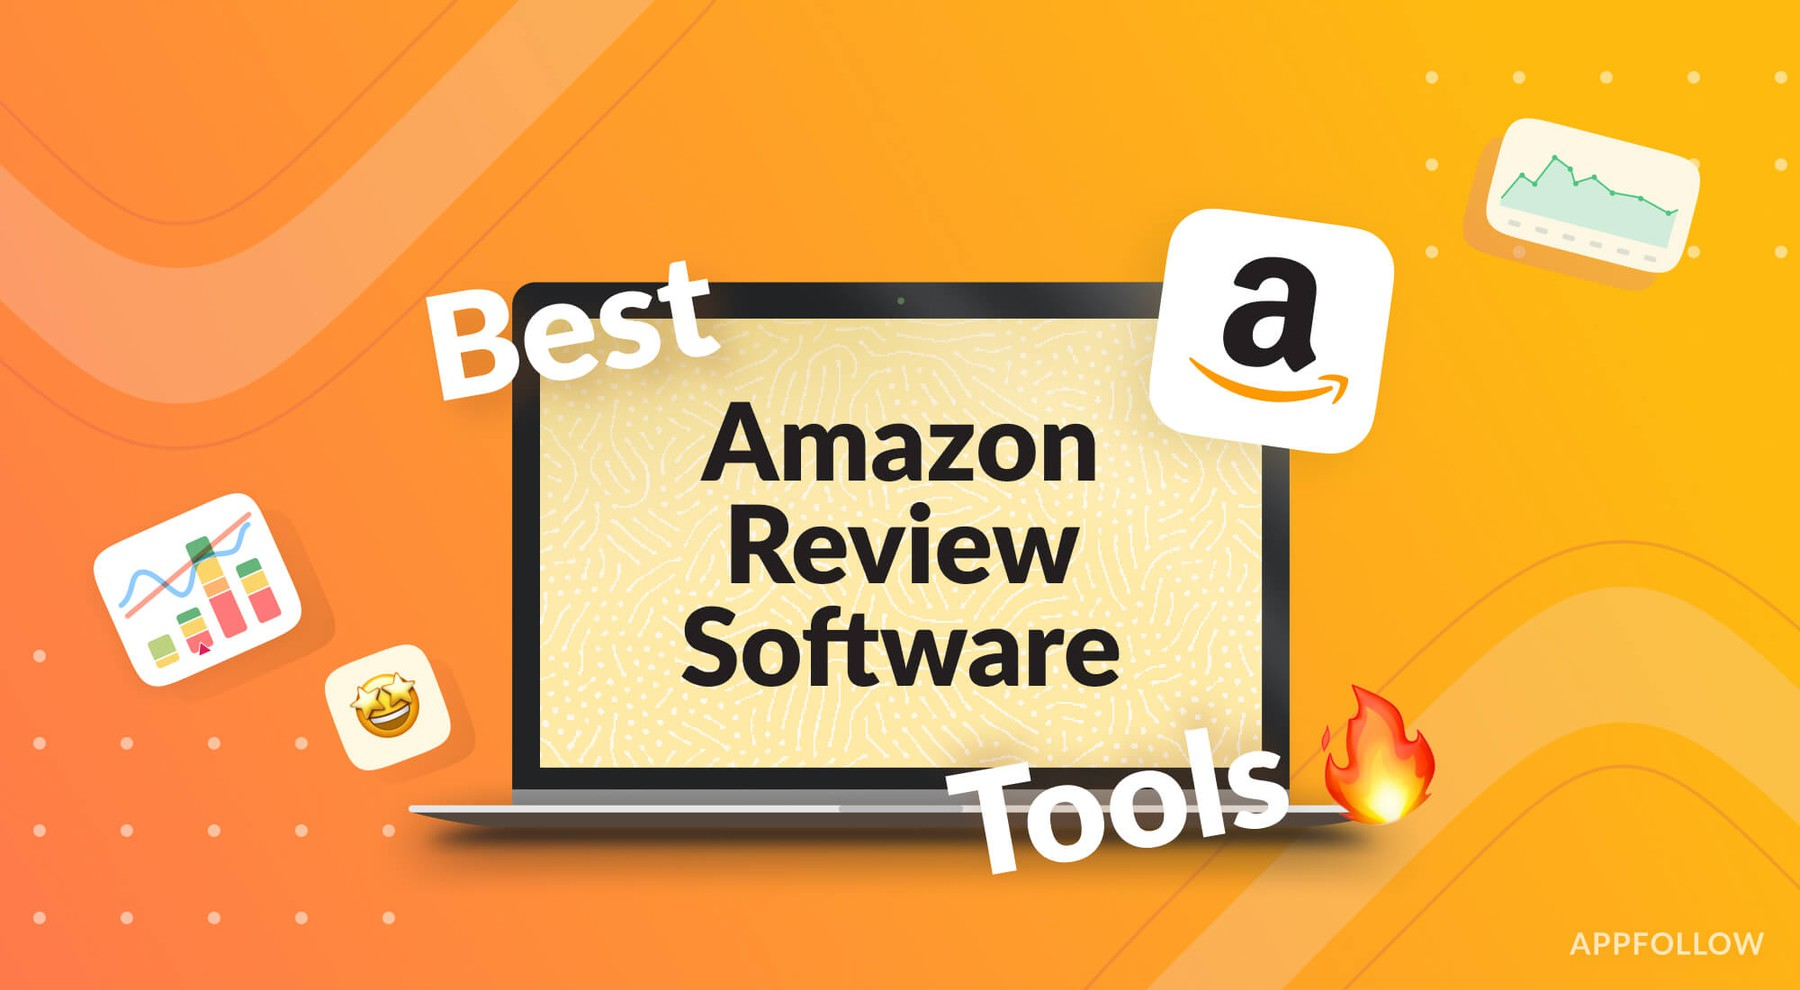 Best Amazon Review Software Tools